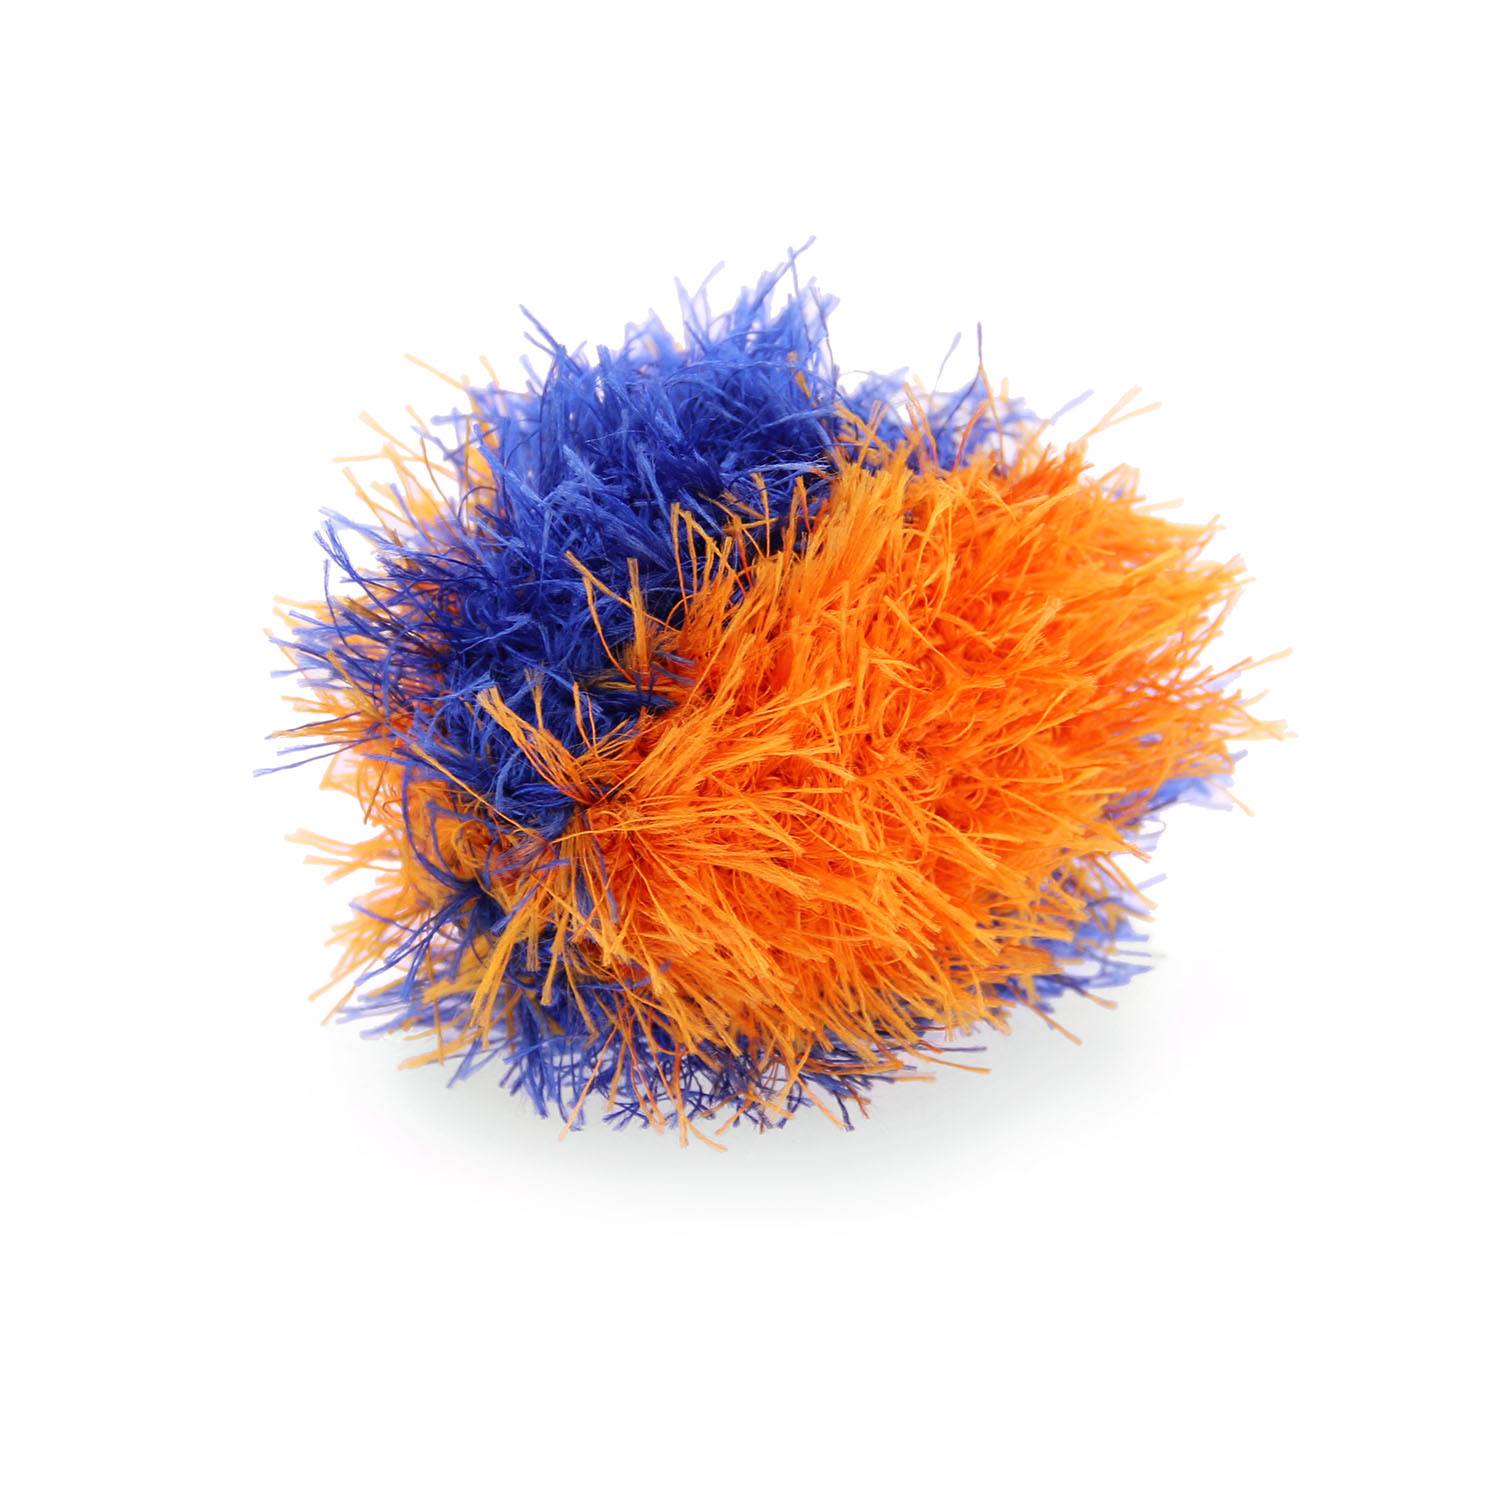 OoMaLoo Handmade Ball Dog Toy - Blue and Orange